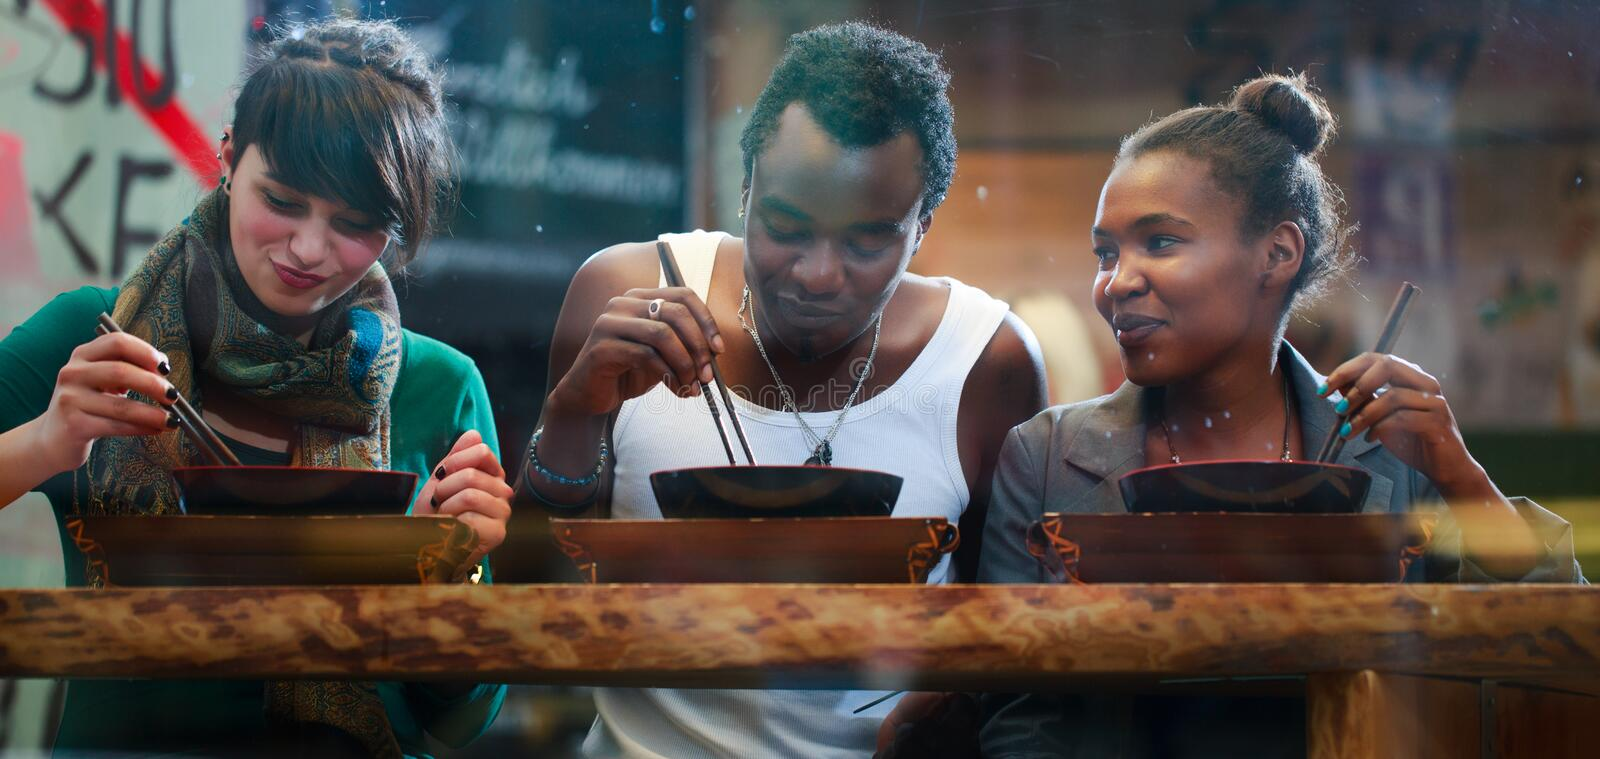 Man and women eating late in Korean eatery. Man and women, black and Latin people, eating late in Korean eatery royalty free stock images